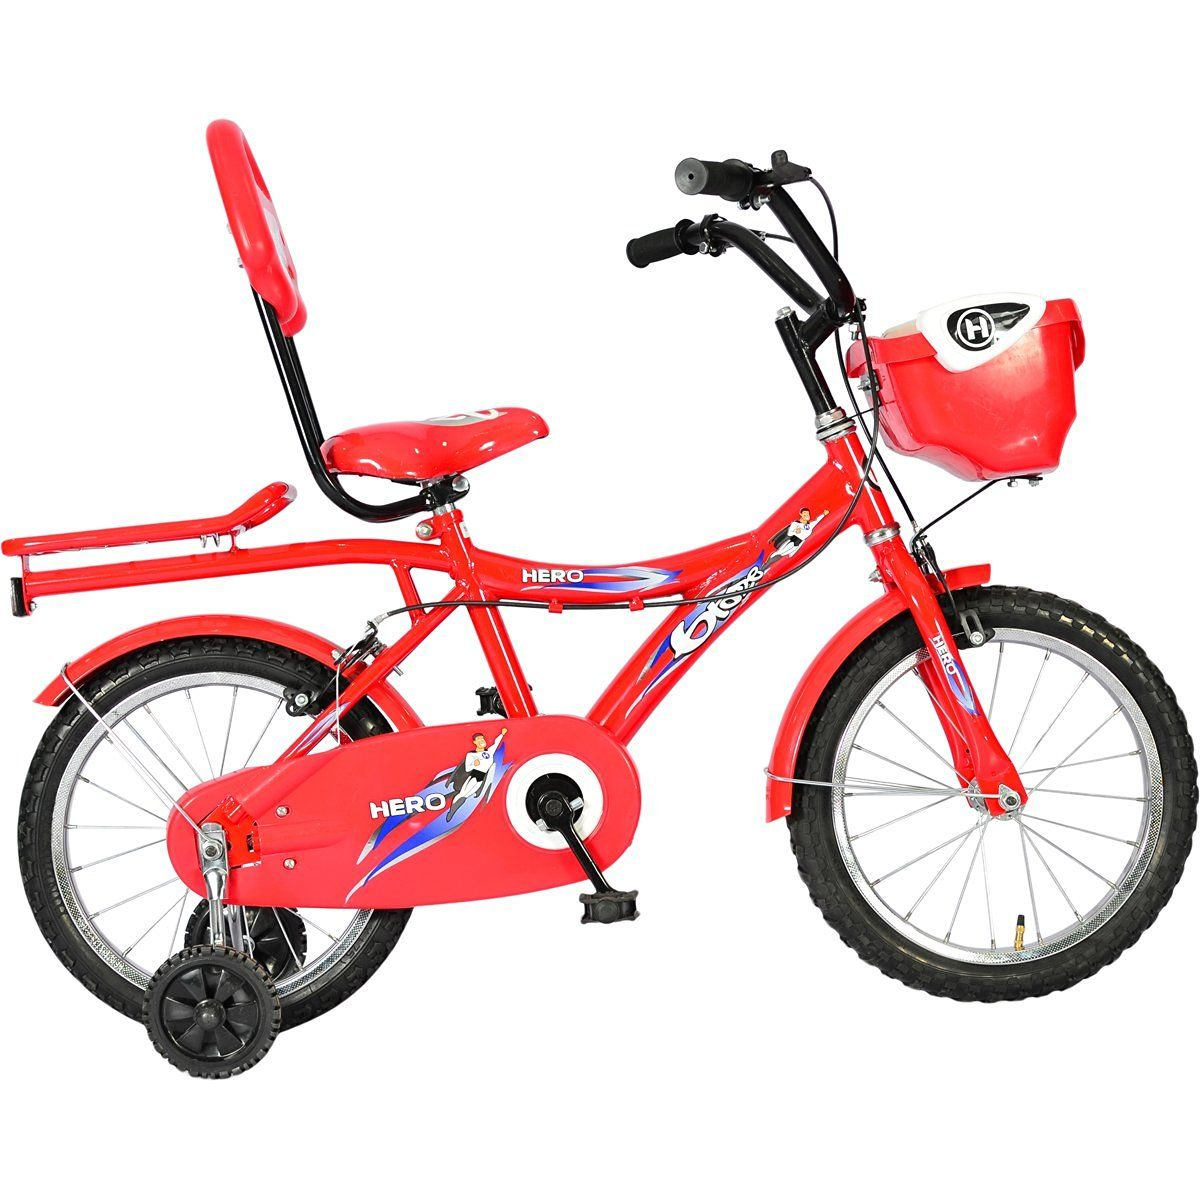 Best Baby Bicycle For 3 4 5 6 Year Old Kids Hero Blaze 16t Hi Riser Kid S Bicycle Red Baby Bicycle Kids Bicycle Bicycle